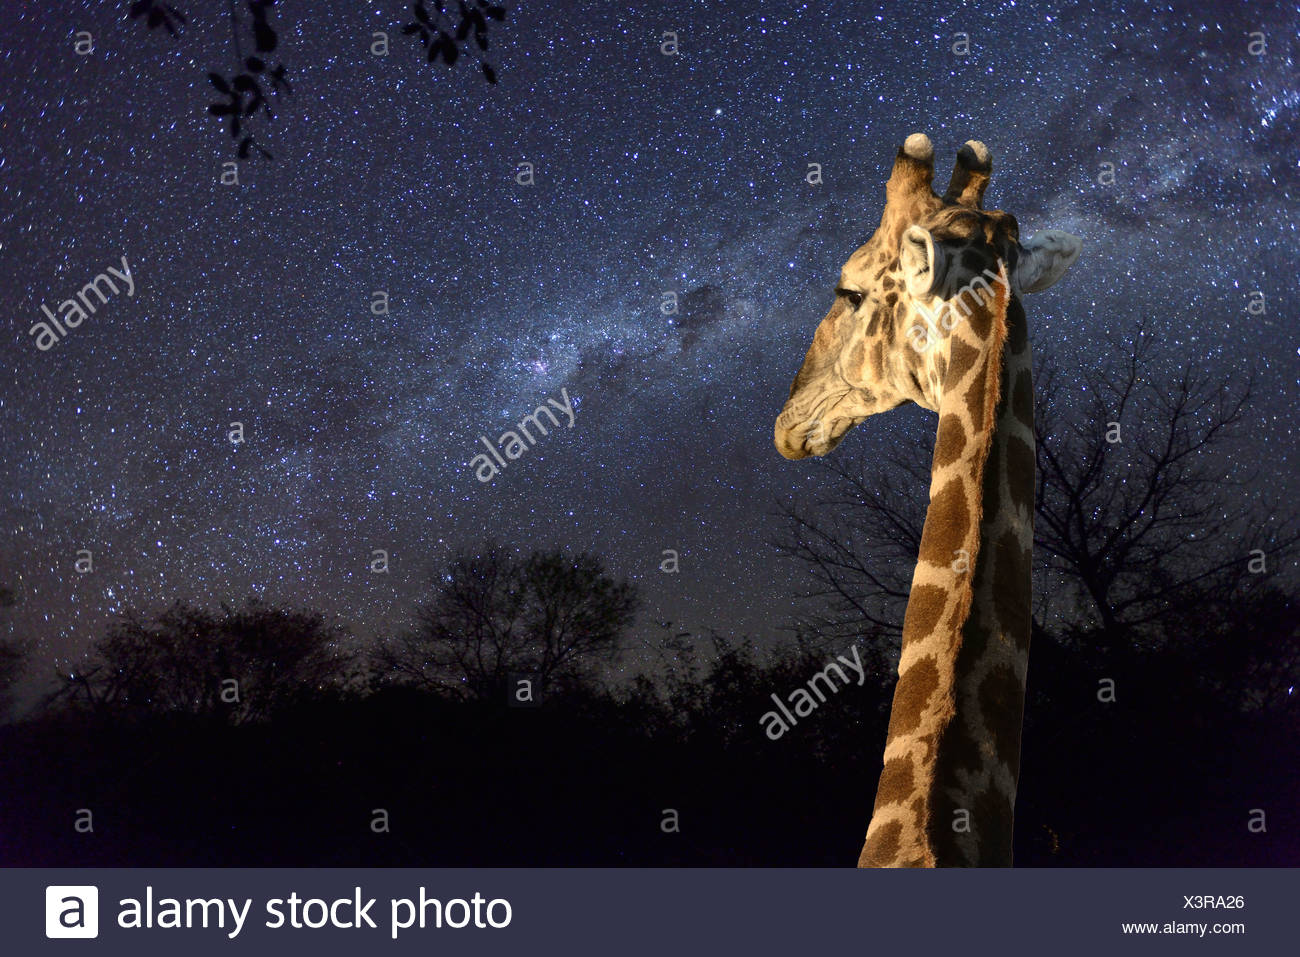 Africa, Southern, Namibiai, night, sky, stars, astro, photography, spangled sky, starlit, giraffe, Grootfontein - Stock Image